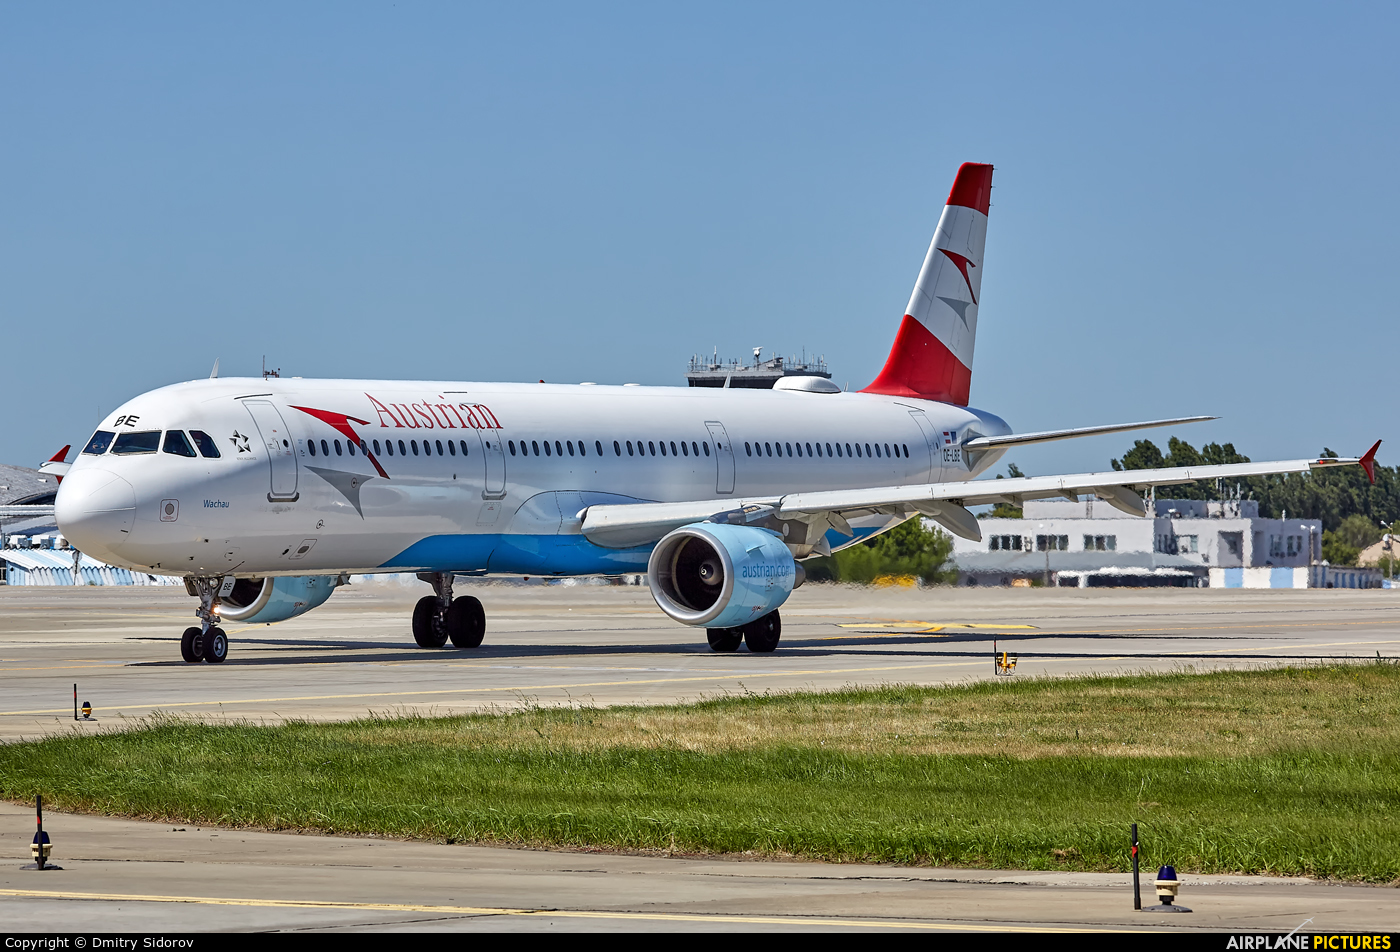 Austrian Airlines/Arrows/Tyrolean OE-LBE aircraft at Kiev - Borispol